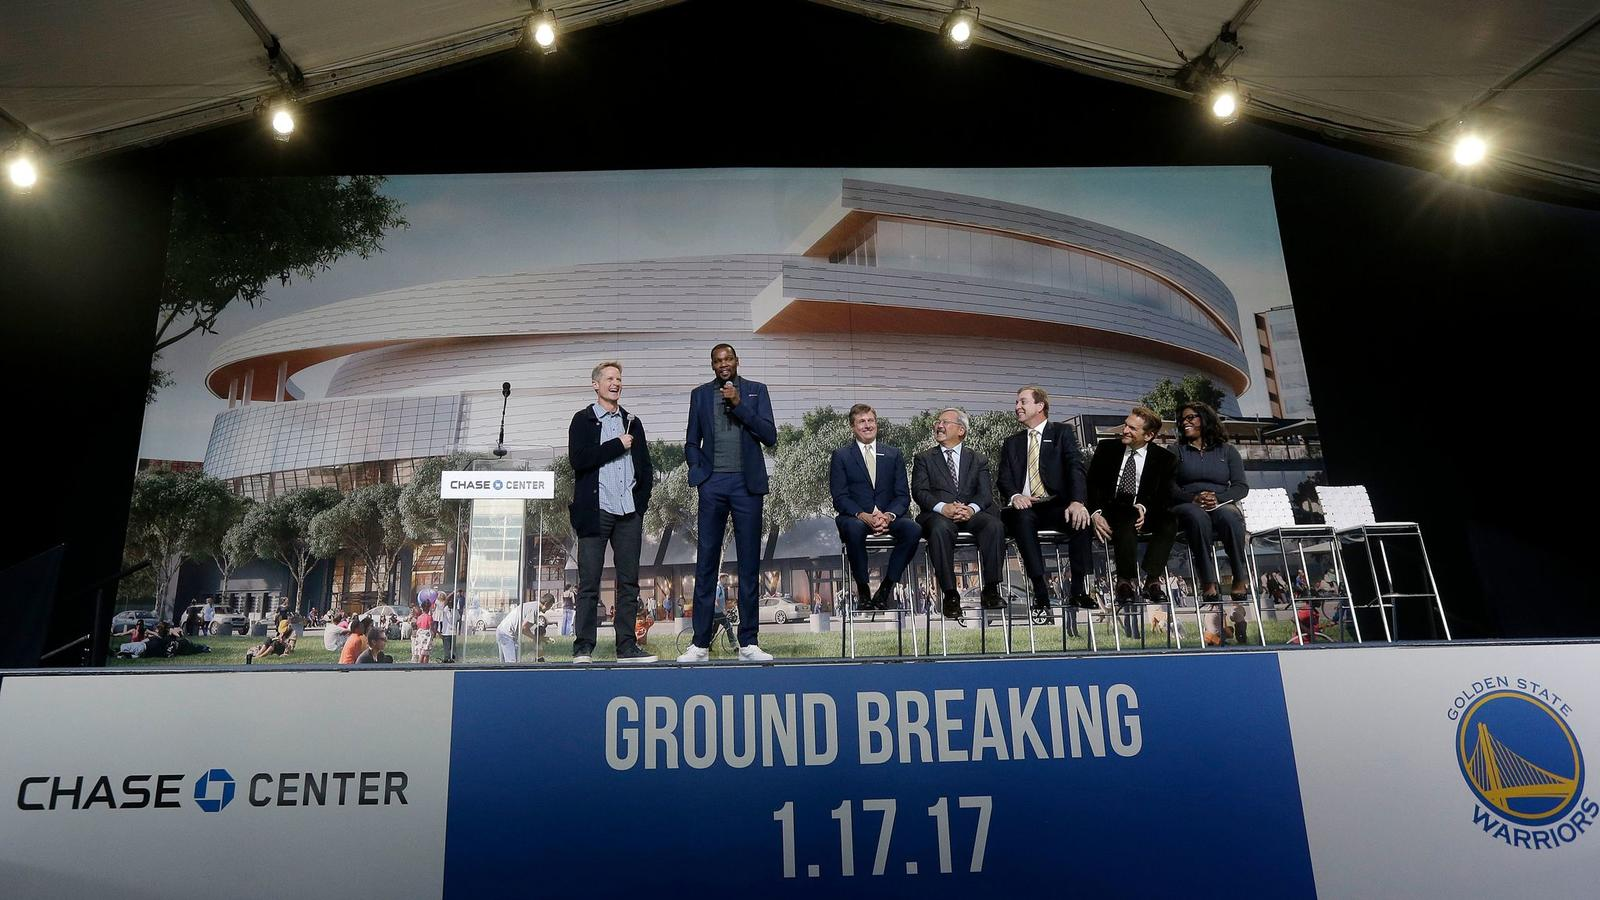 Golden State Warriors head coach Steve Kerr, left, and forward Kevin Durant, second from left, speak during a groundbreaking ceremony for the Chase Center in San Francisco on Jan. 17.